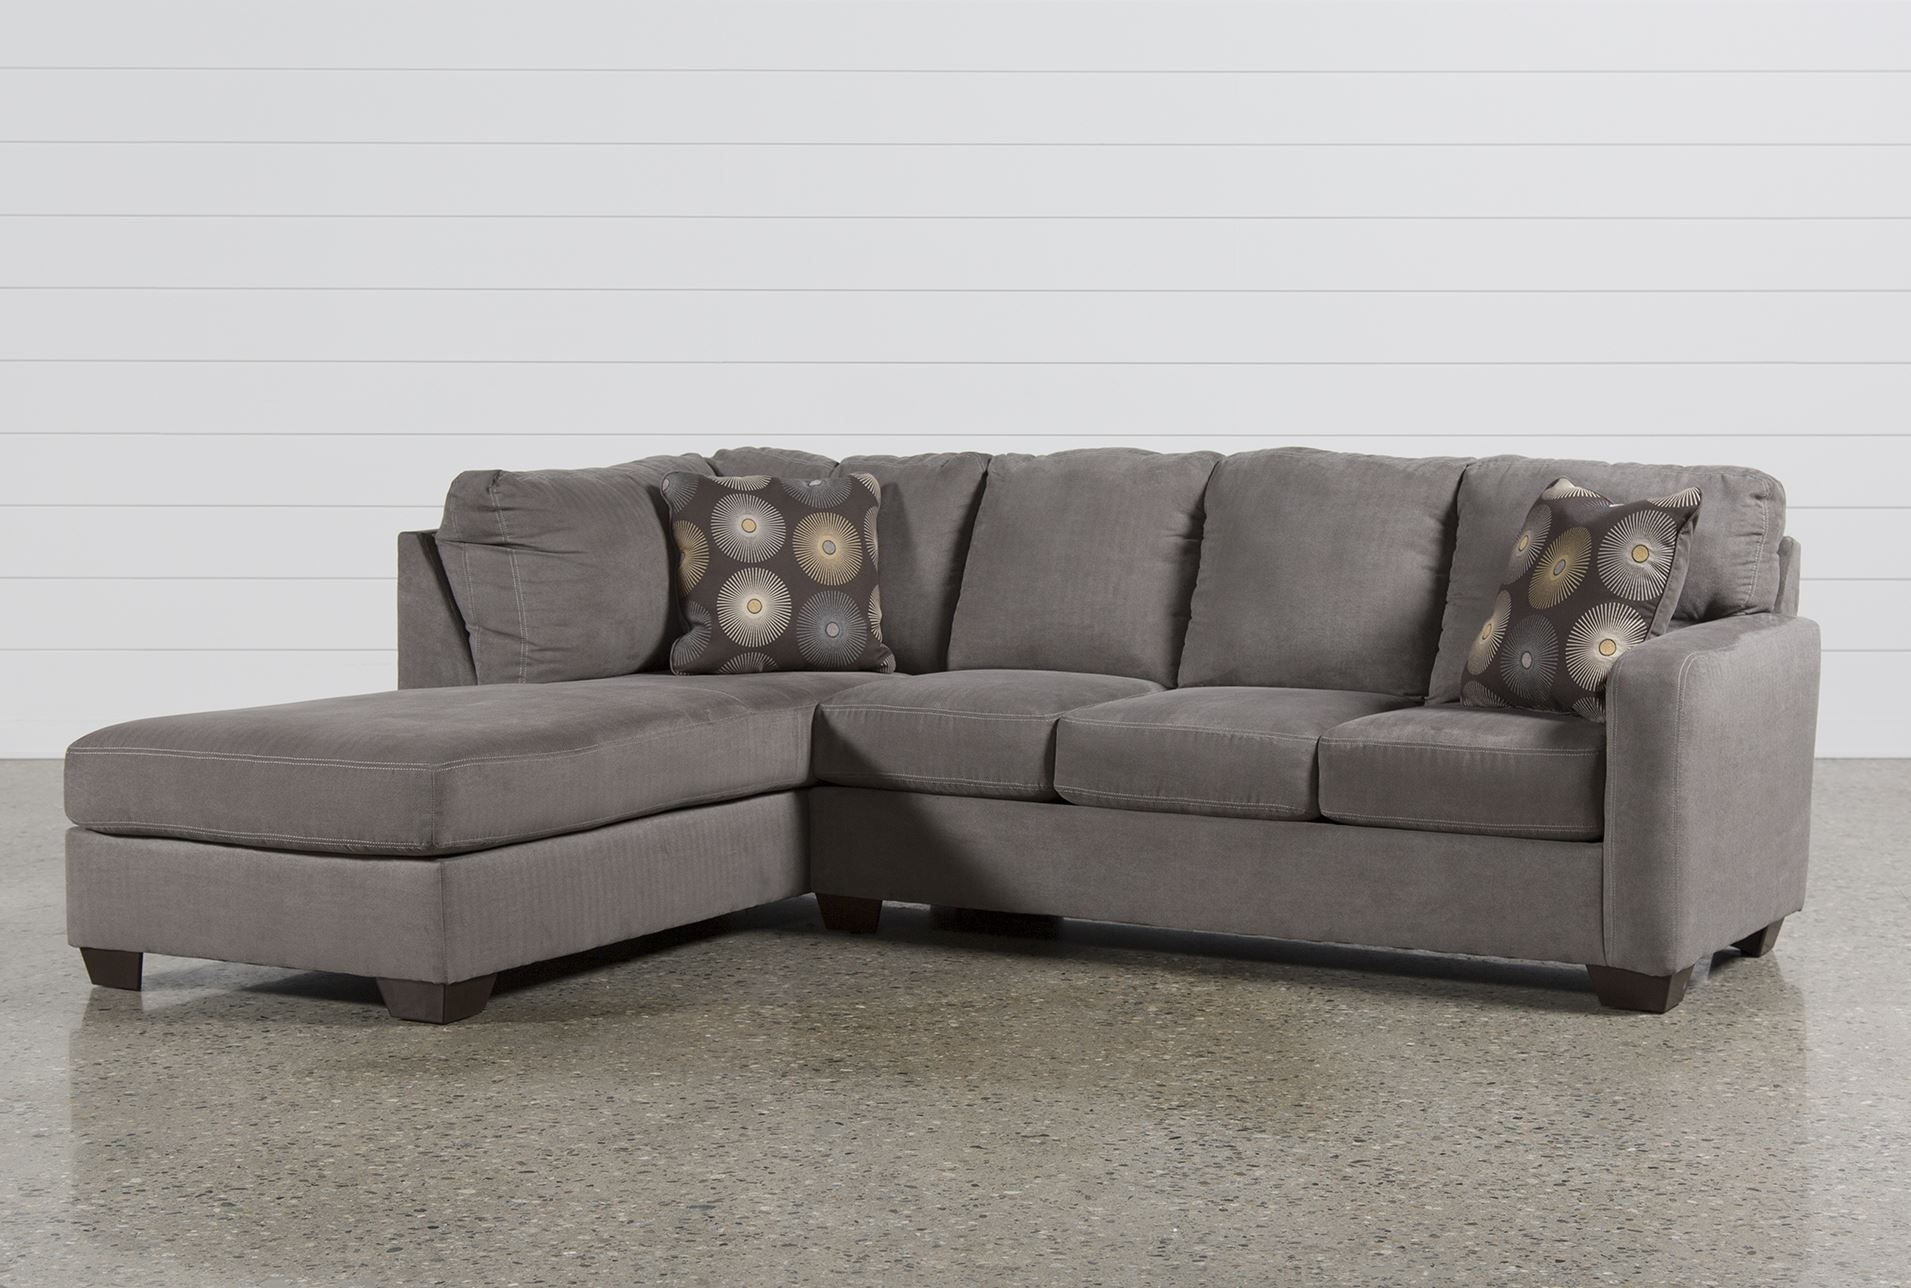 Laf Chaise Sectional Sofa | Baci Living Room Within Arrowmask 2 Piece Sectionals With Raf Chaise (Image 9 of 25)